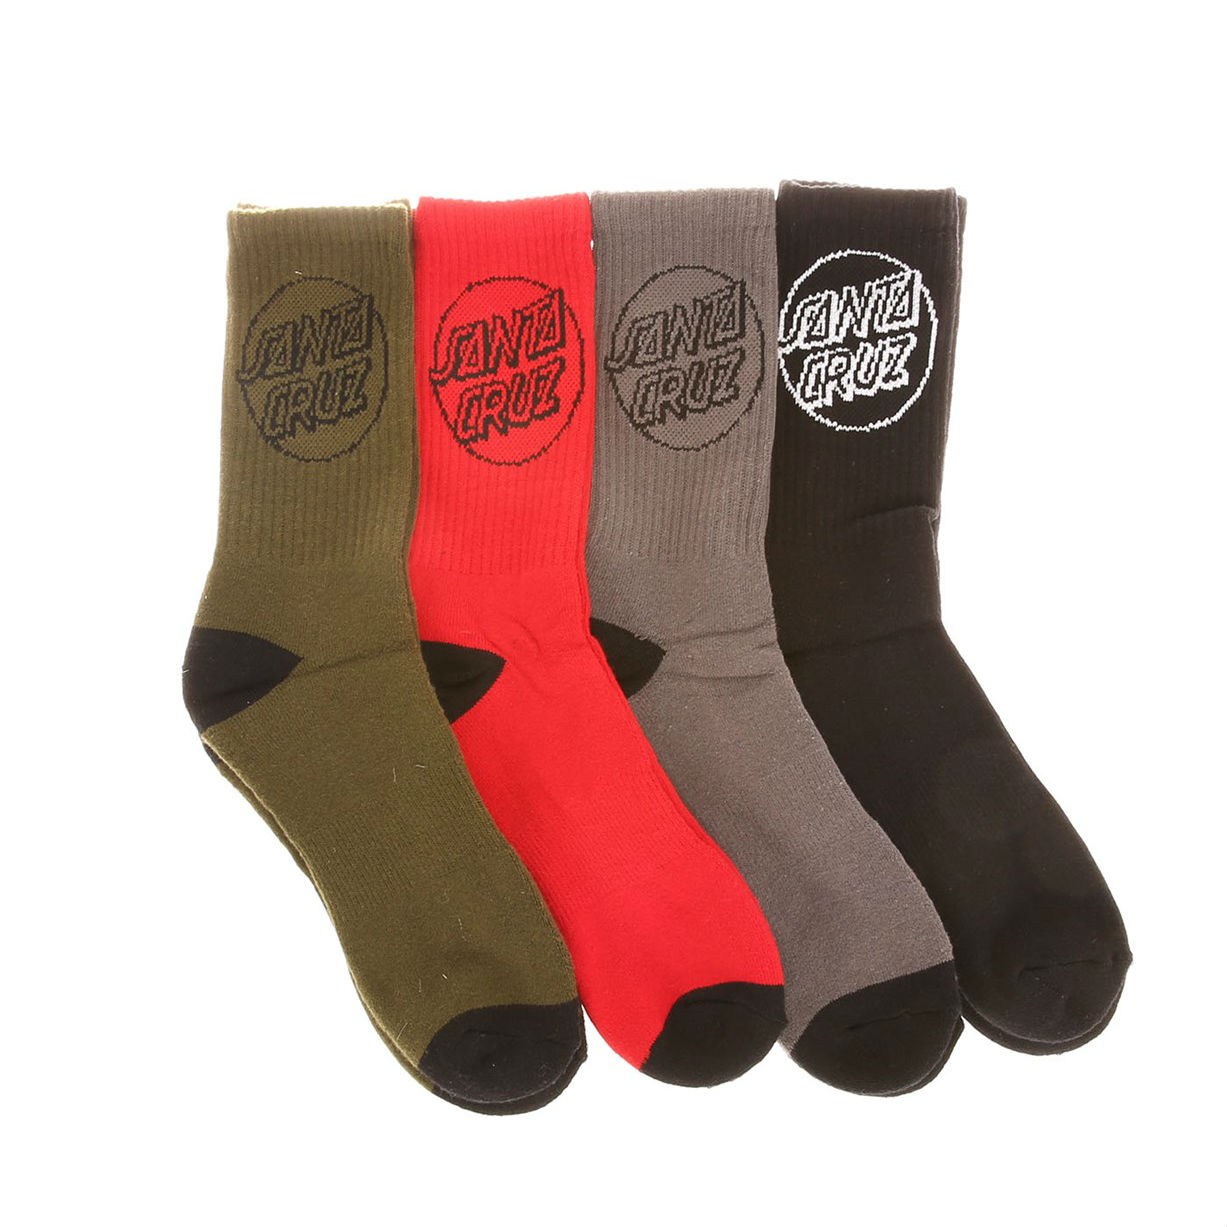 Santa Cruz Socks 4 Pack Colour Asst Crew Size 7-11 New Men Skateboard Sox